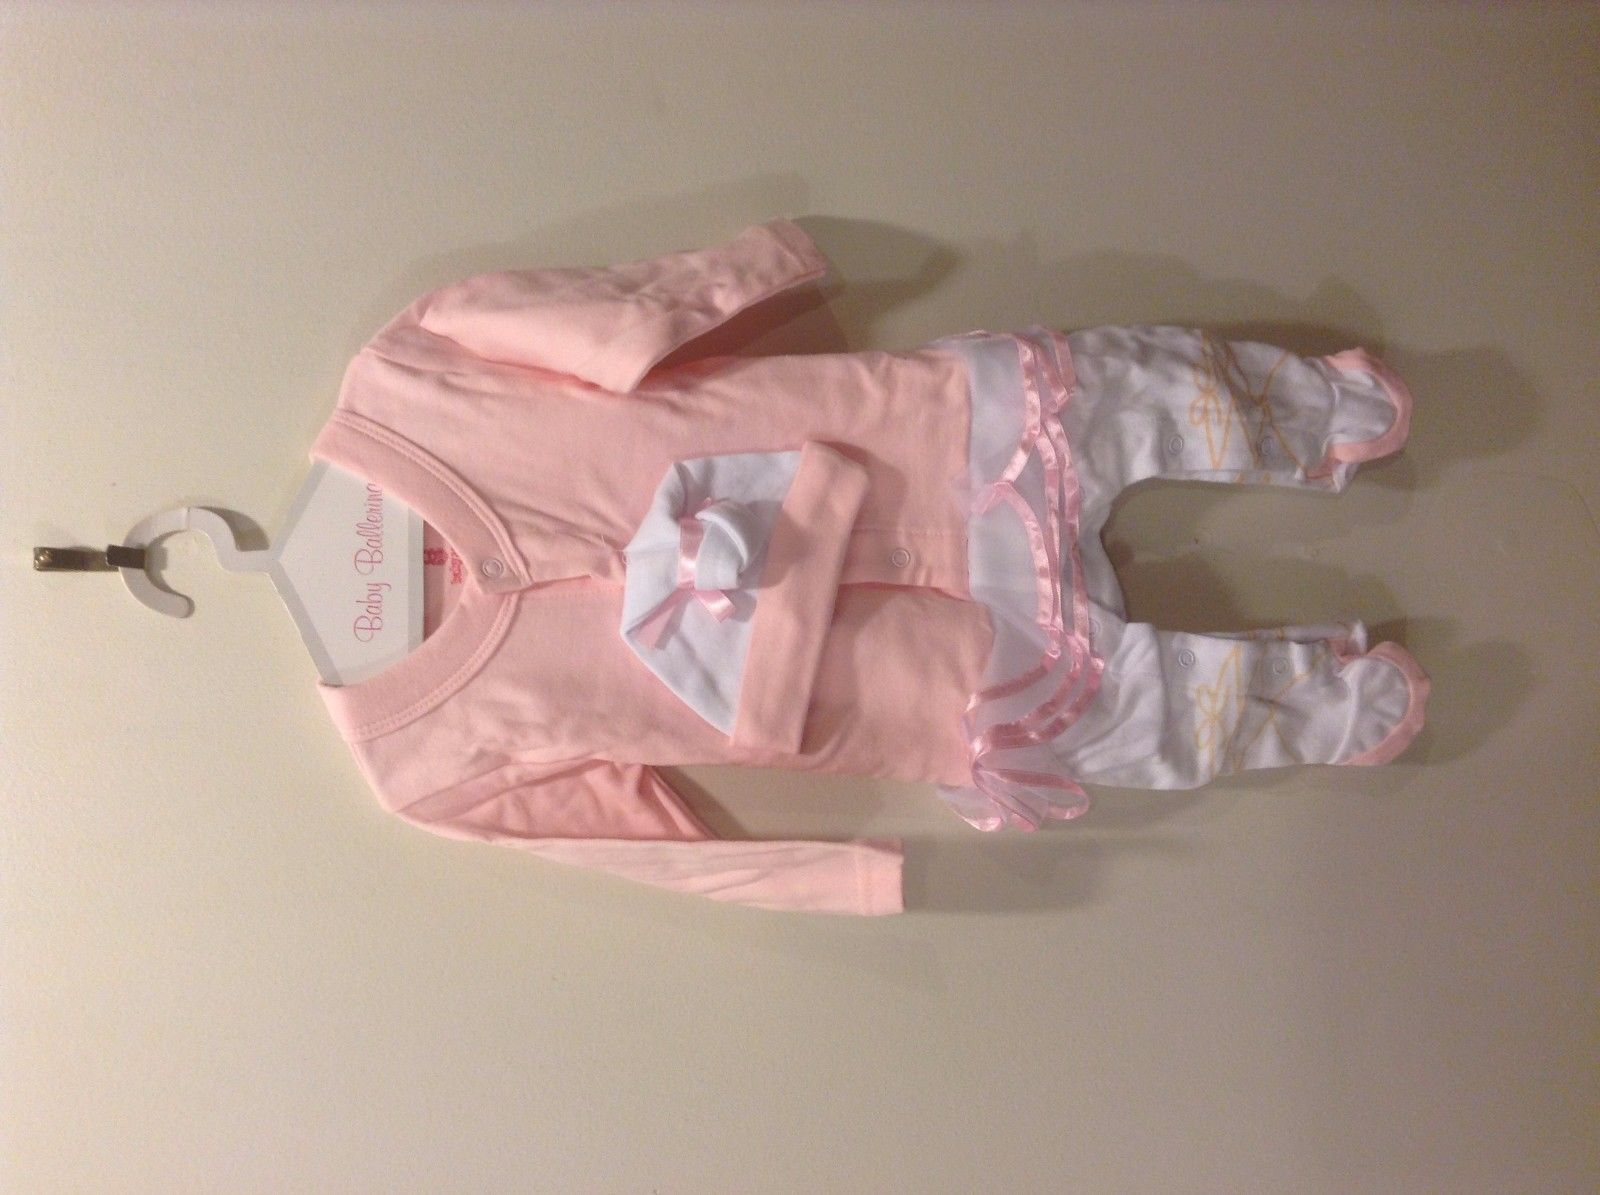 Big Dreamz Baby Ballerina Layette Set Body Suit Pink 100% Cotton Cap 0-6 months